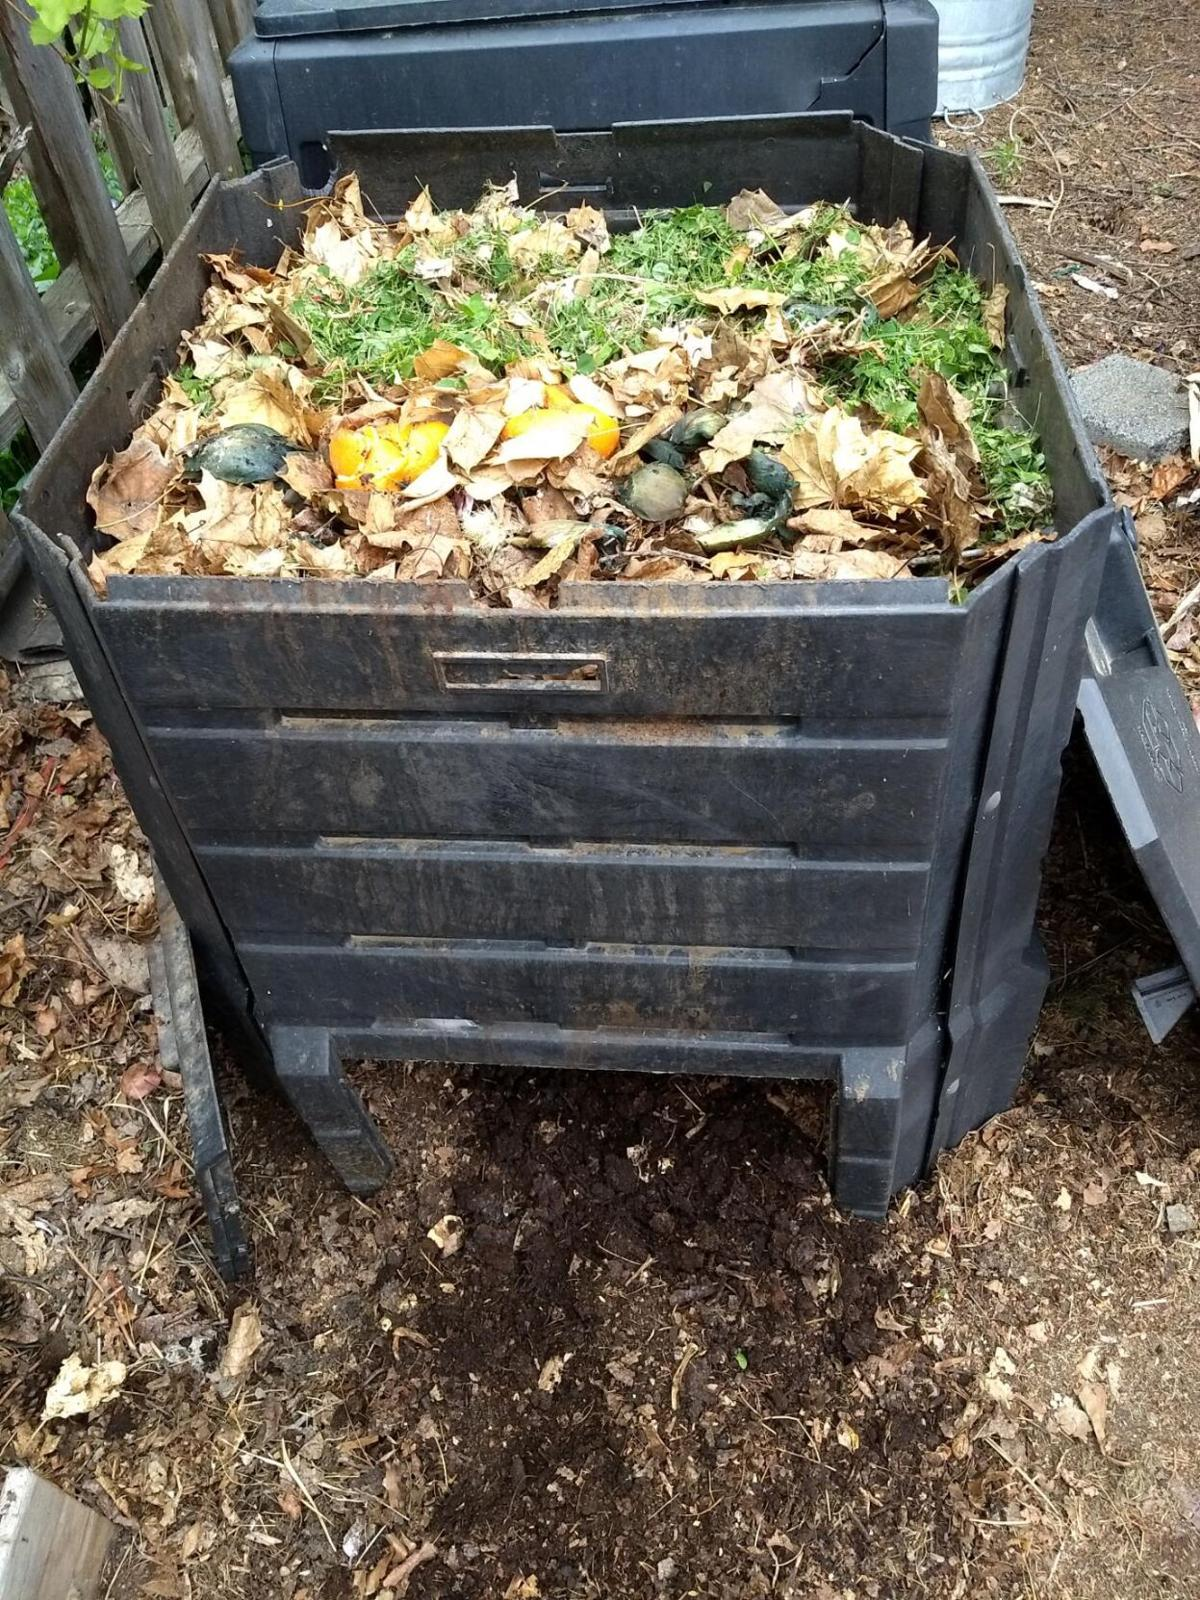 Think composting isn't for you? It's time to re-think